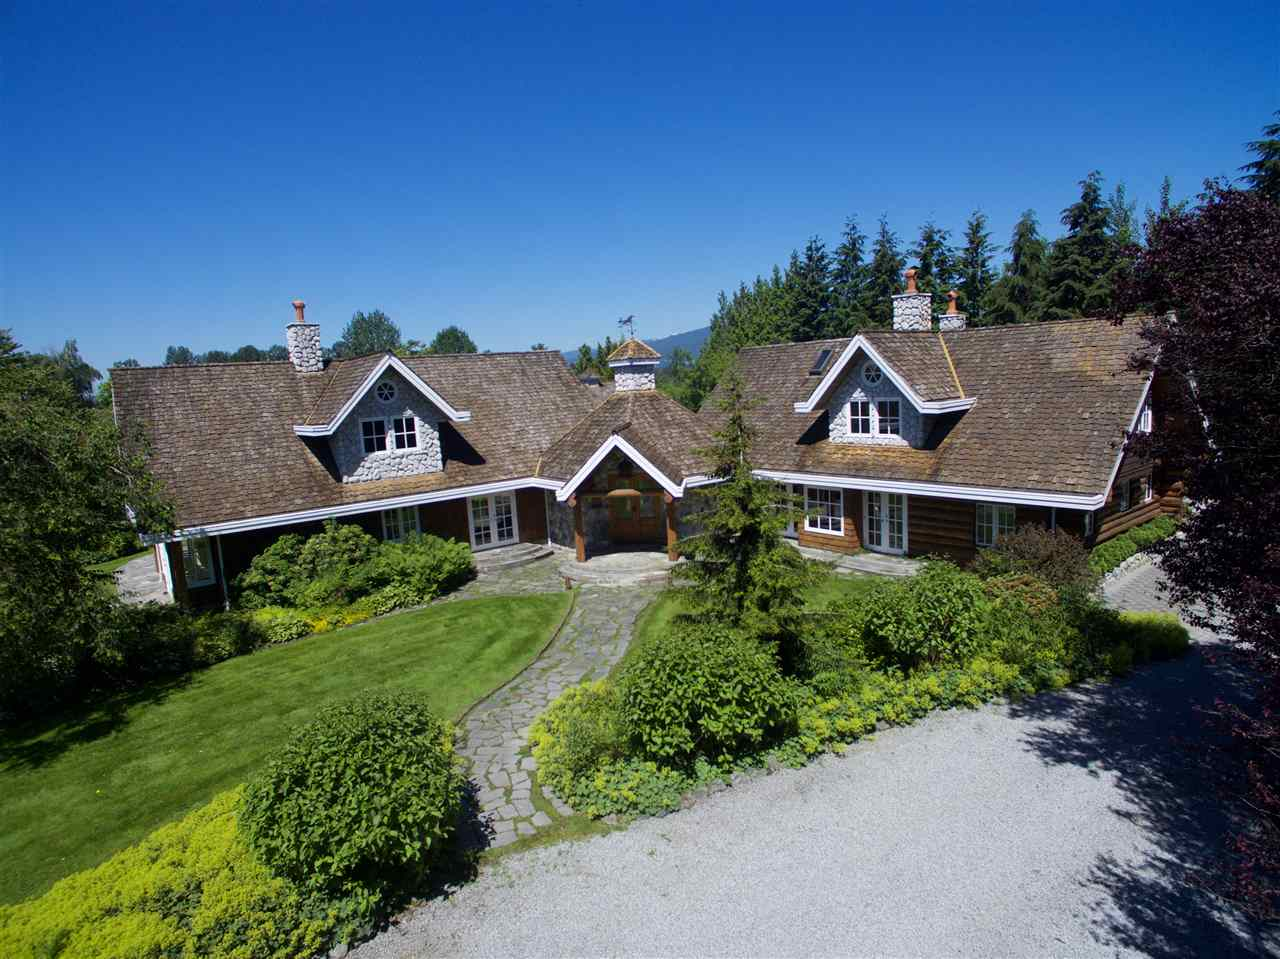 A unique 9.79 acre estate/agri-business property comprising a total of five buildings; main house (+/-4,655 sq ft), event hall (2,325 sq ft), coach house with guest suite (1,490 sq ft), barn with licensed caretaker's quarters (2,100 sq ft) & a stable (1,019 sq ft). The buildings are situated on a meticulous landscaped garden which features a large pond with an island & two bridges. Many other features include 7 acres planted certified organic blueberry field, irrigation/sprinklers & extensive gravel base driveways. This must be seen to be appreciated!